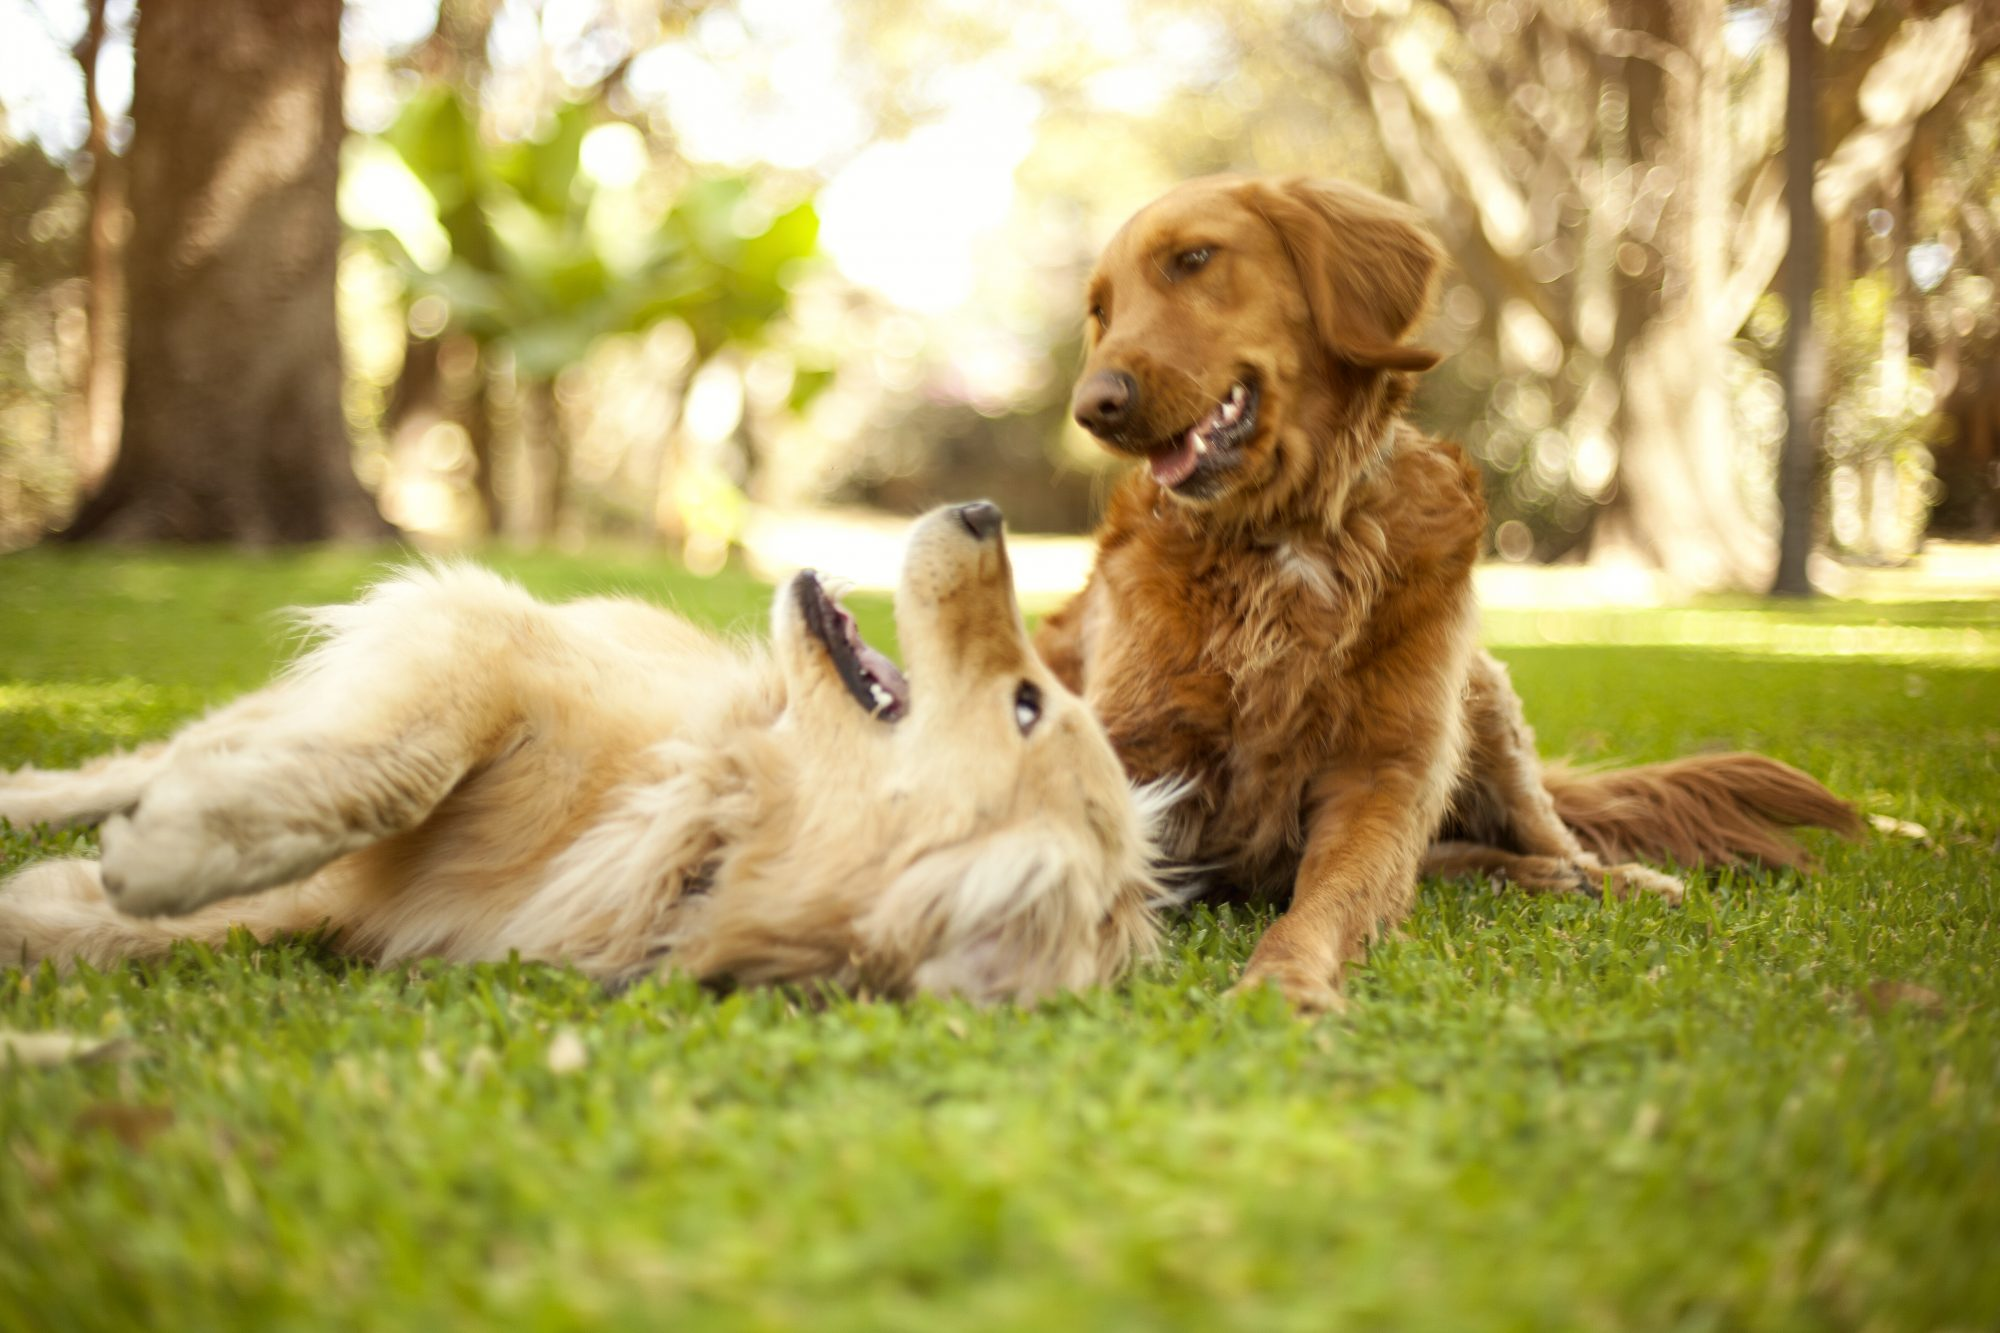 two golden retrievers playing in park